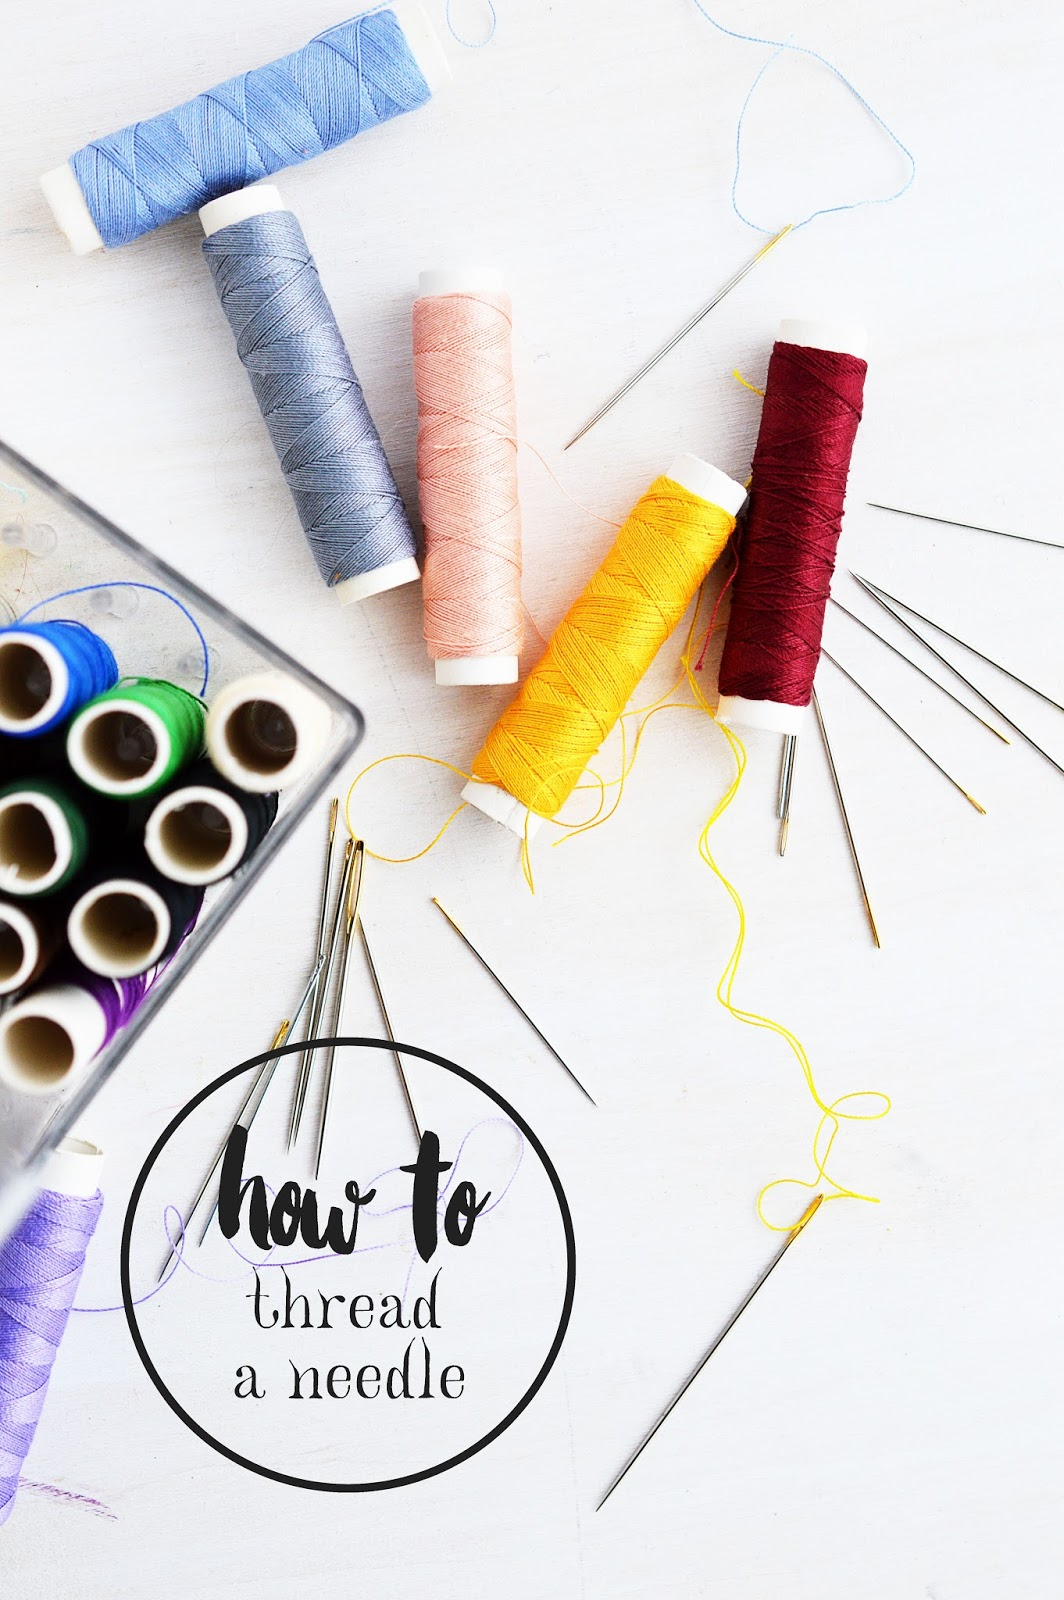 Crafter's Know-How | How to thread a sewing needle properly | 6 tips | Motte's Blog